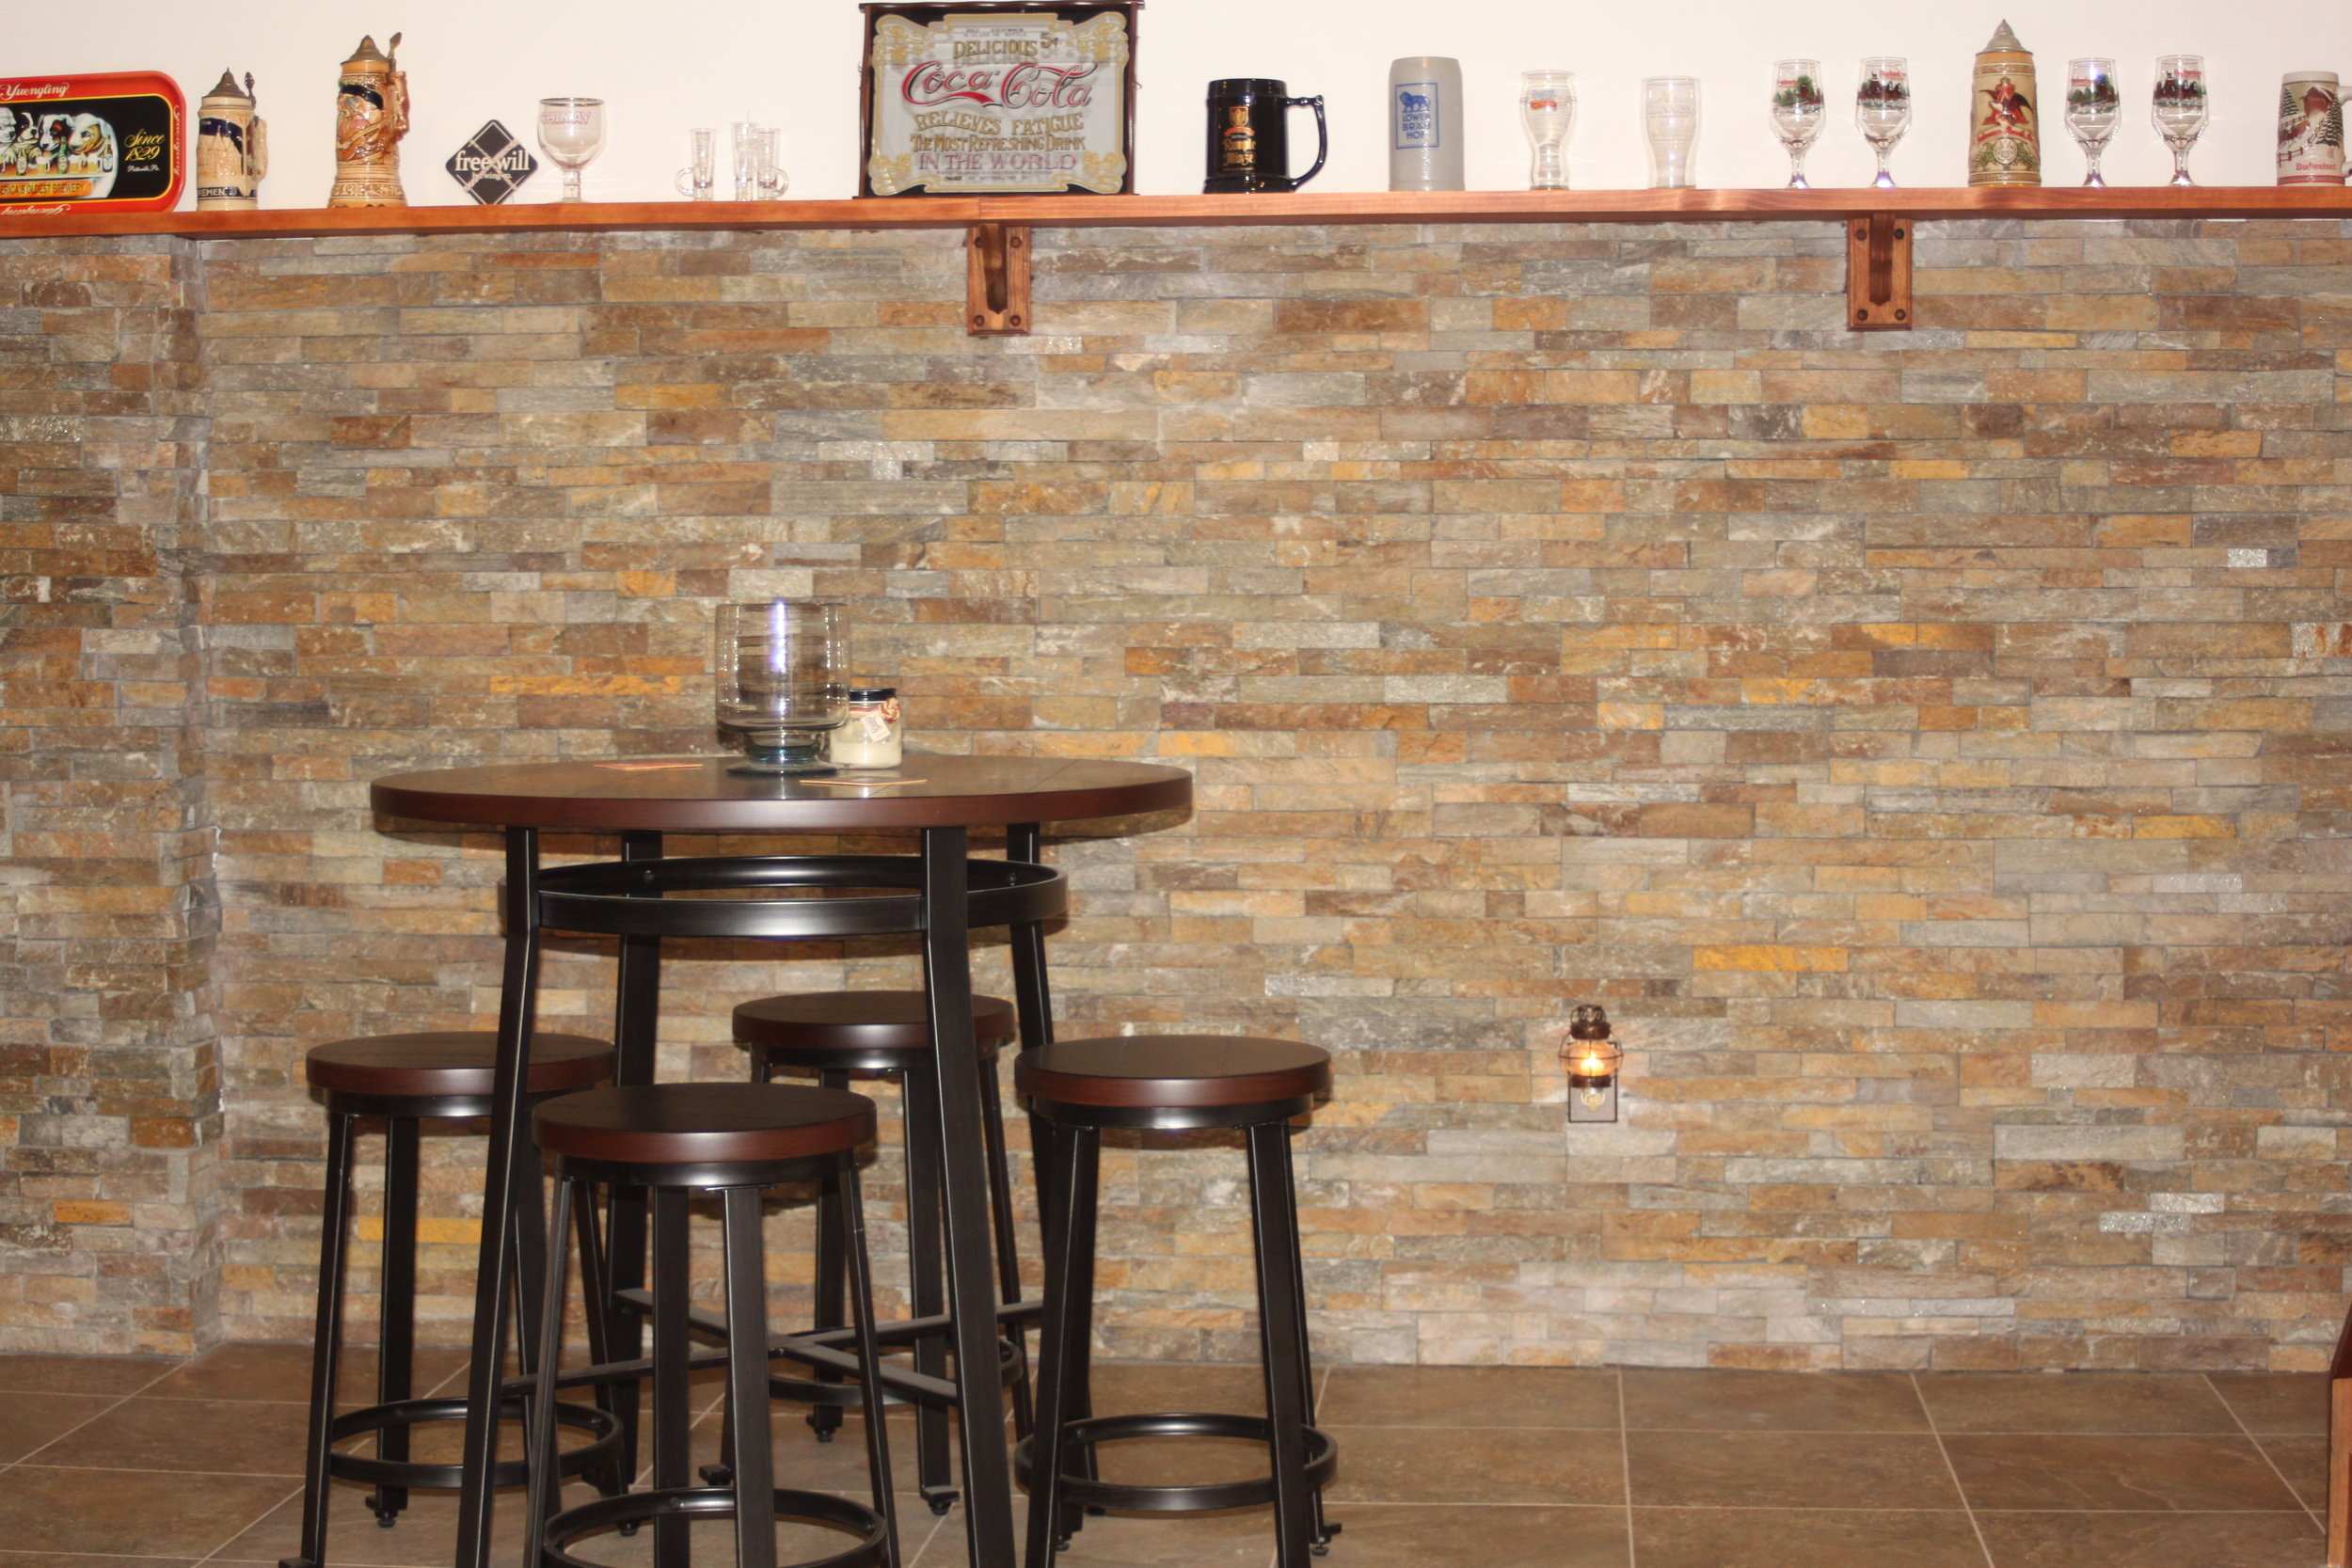 Ledgerstone Feature Wall